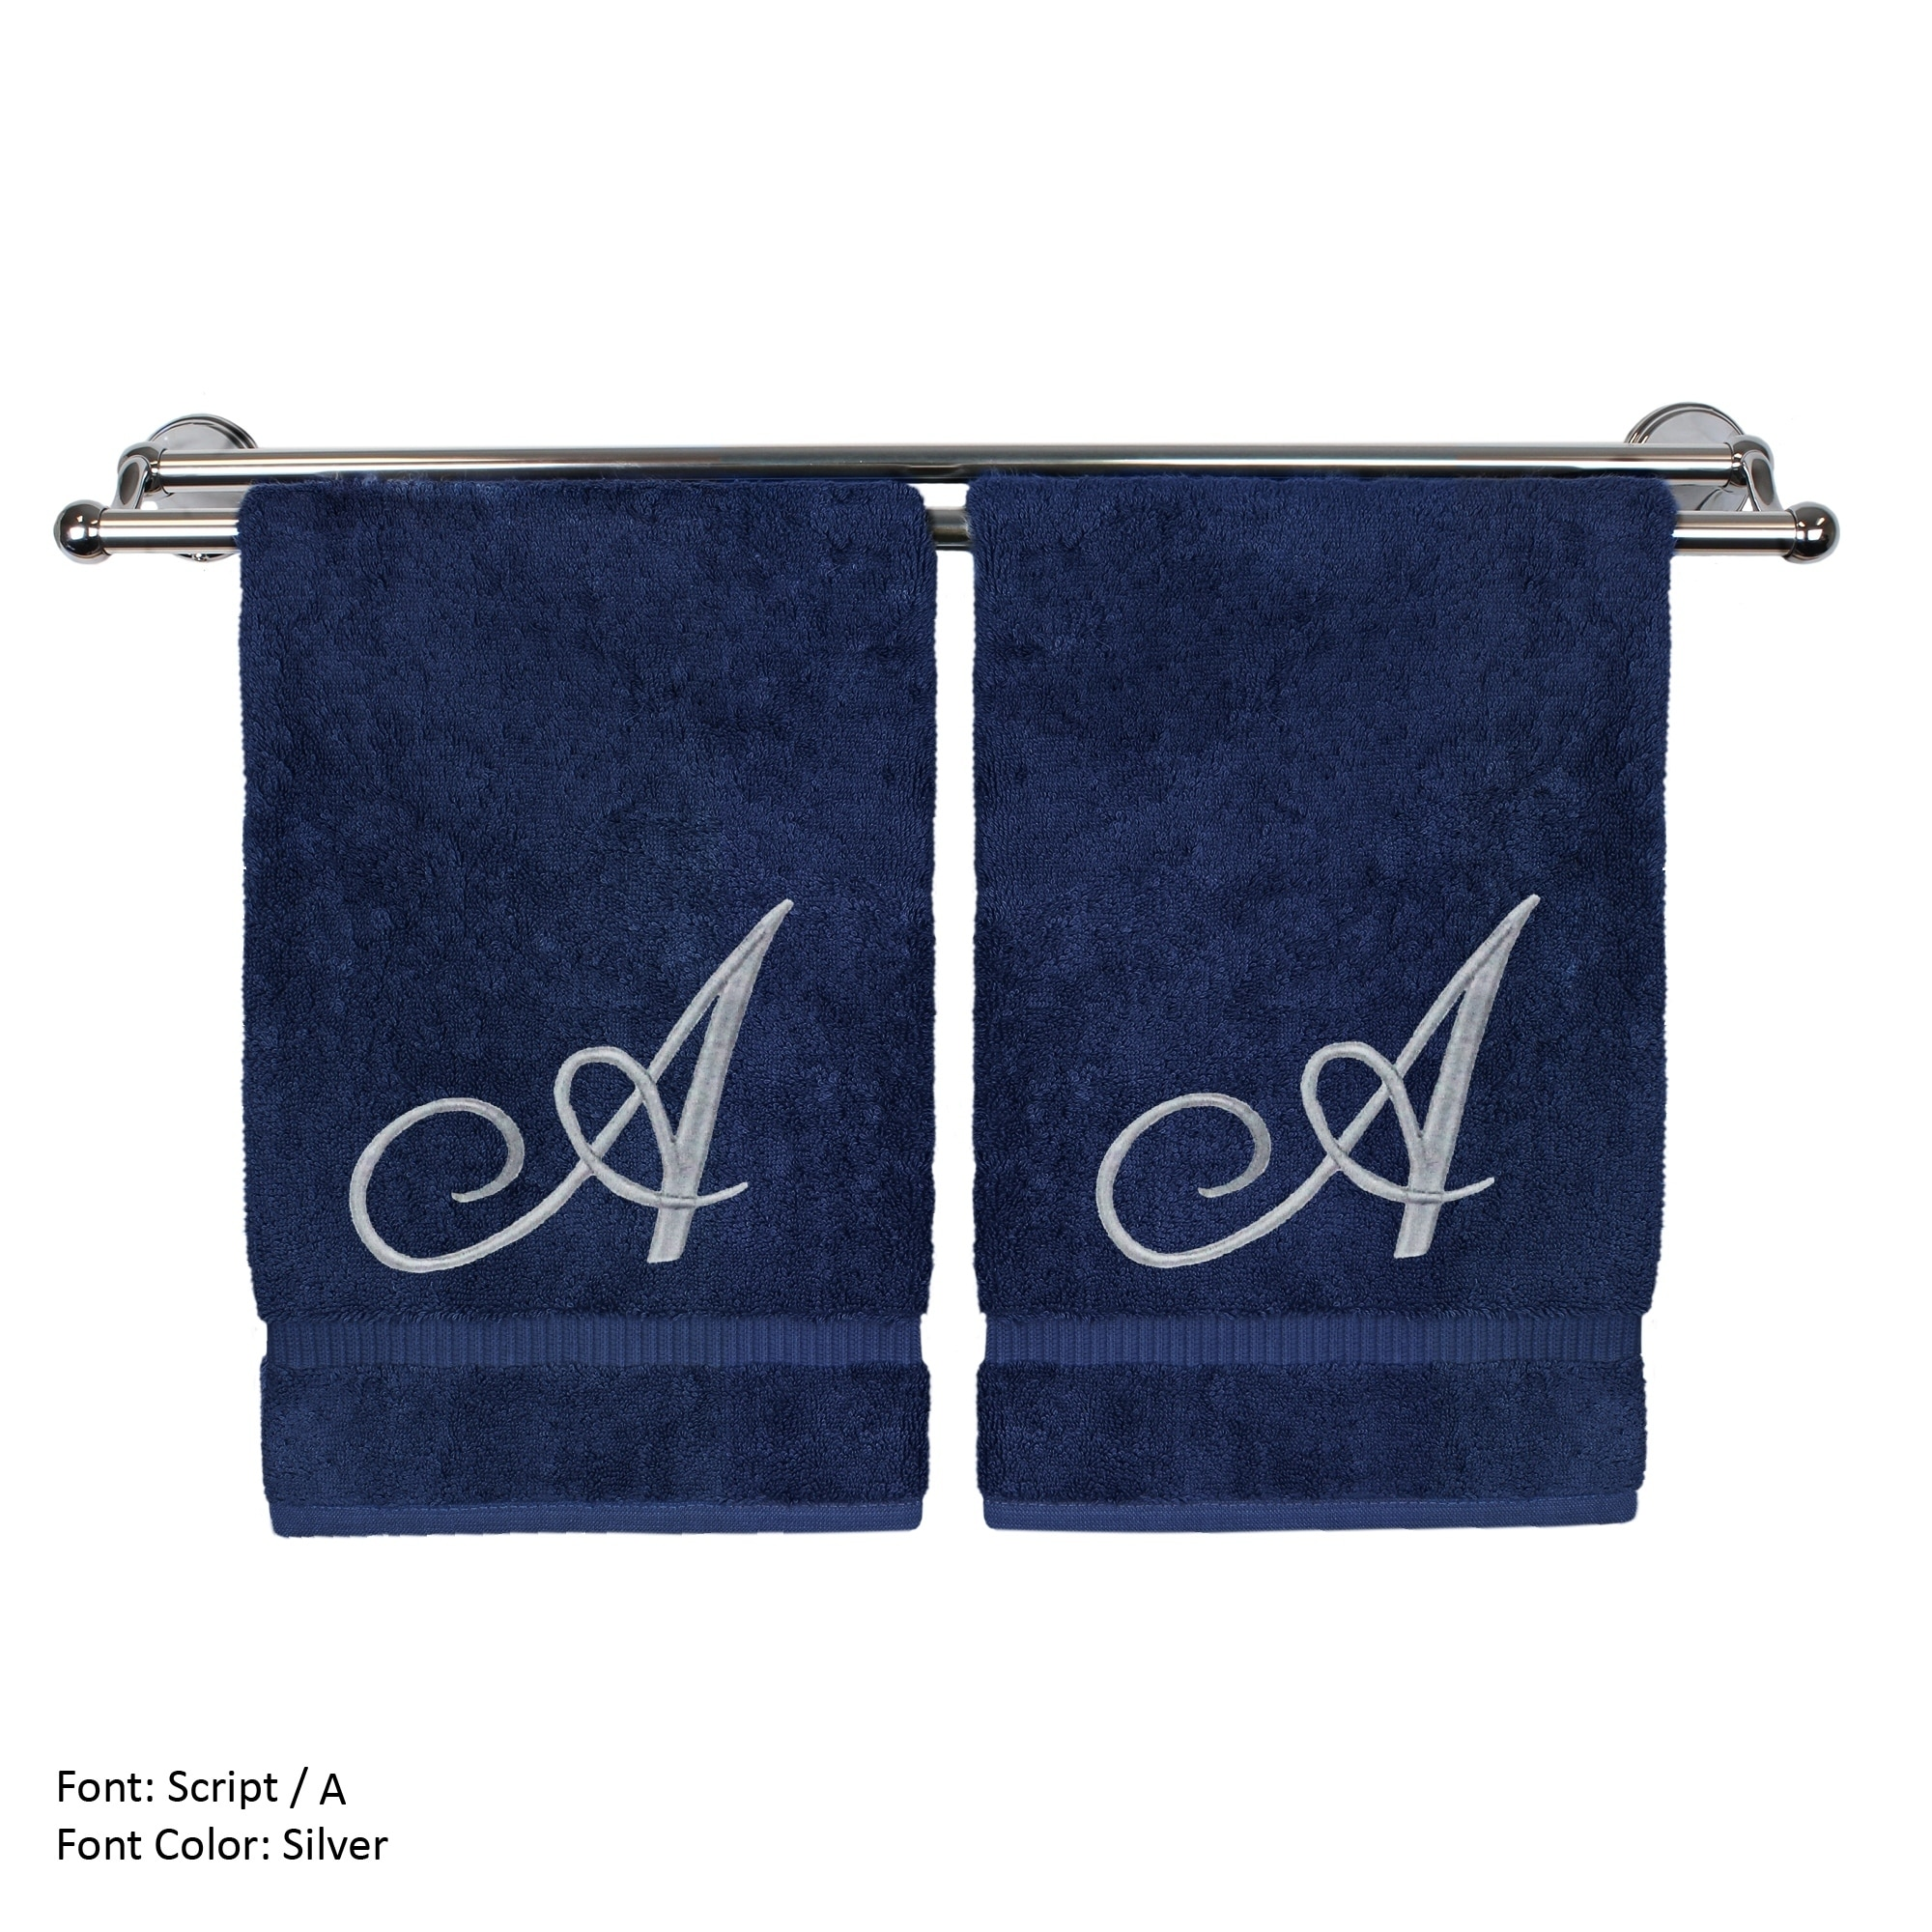 Monogrammed Washcloth Towel, Personalized Gift, 13x13 Inches - Set of 2 - Silver Script Embroidered Towel - Extra Absorbent 100% Turkish Cotton - Soft Terry Finish - Initial A Navy